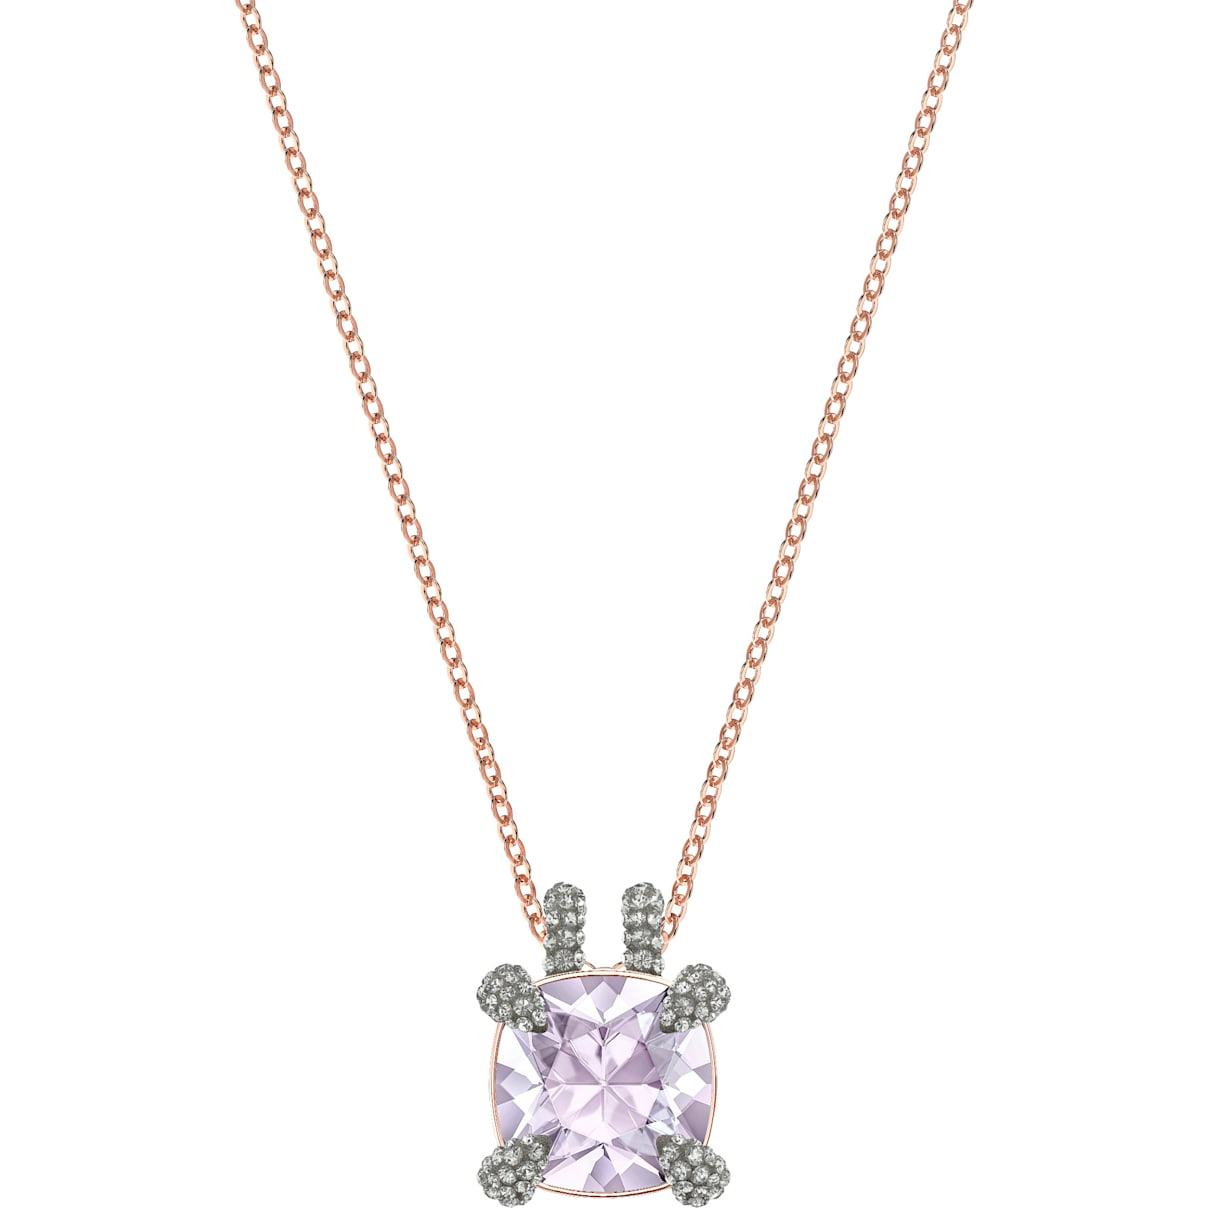 Swarovski Make Pendant, Violet, Rose-gold tone plated